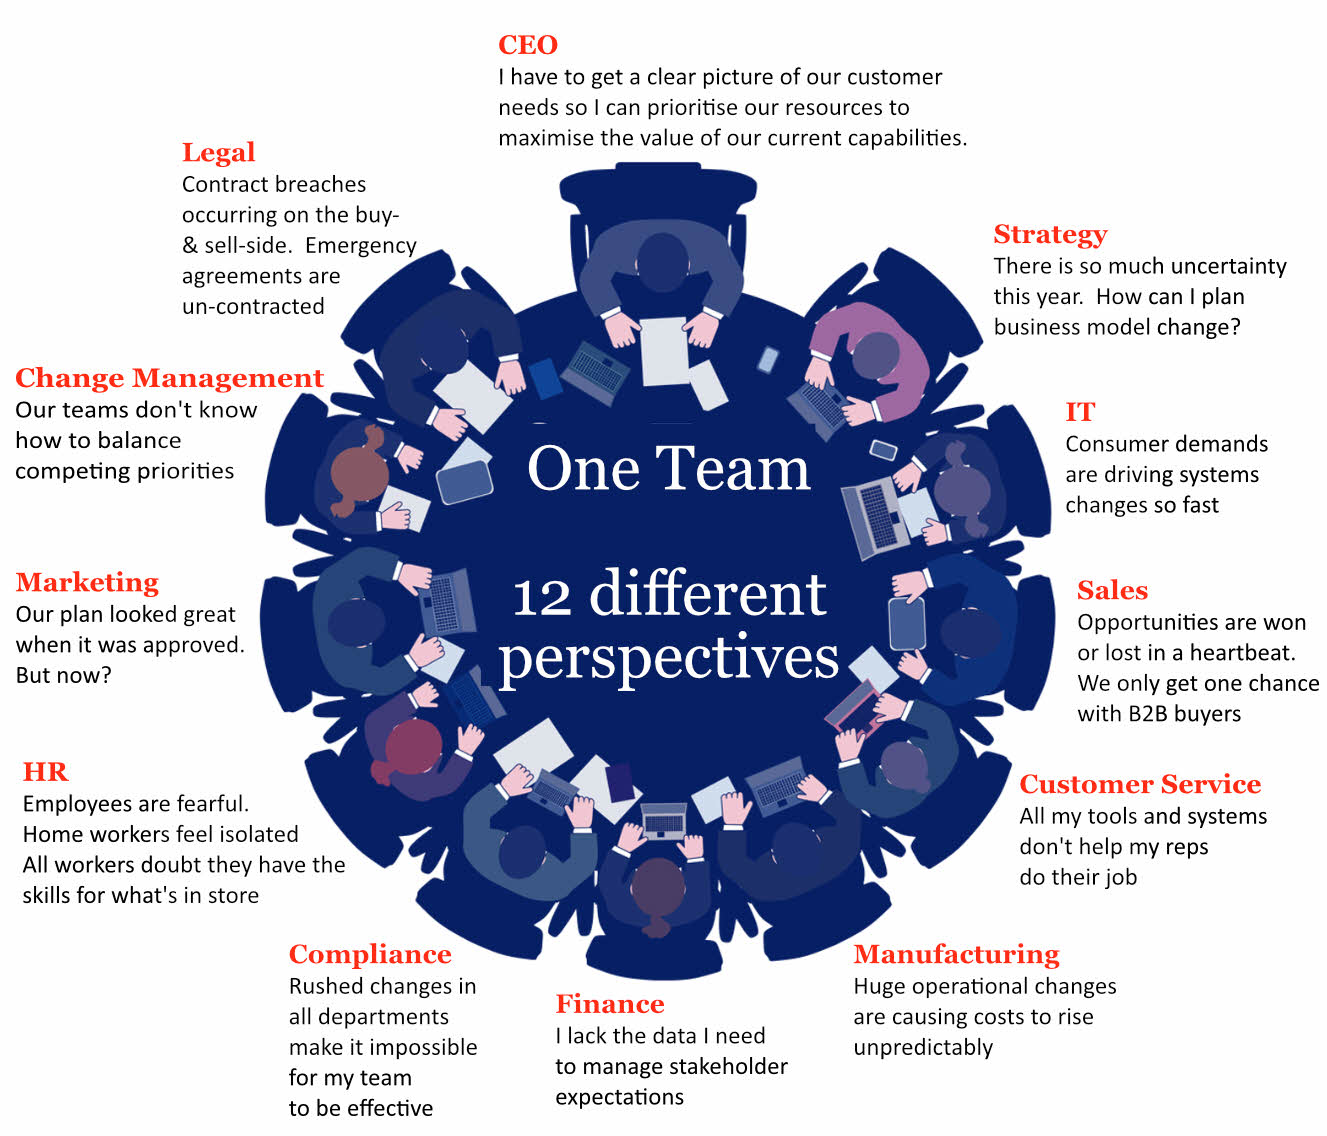 One Team - 12 different perspectives